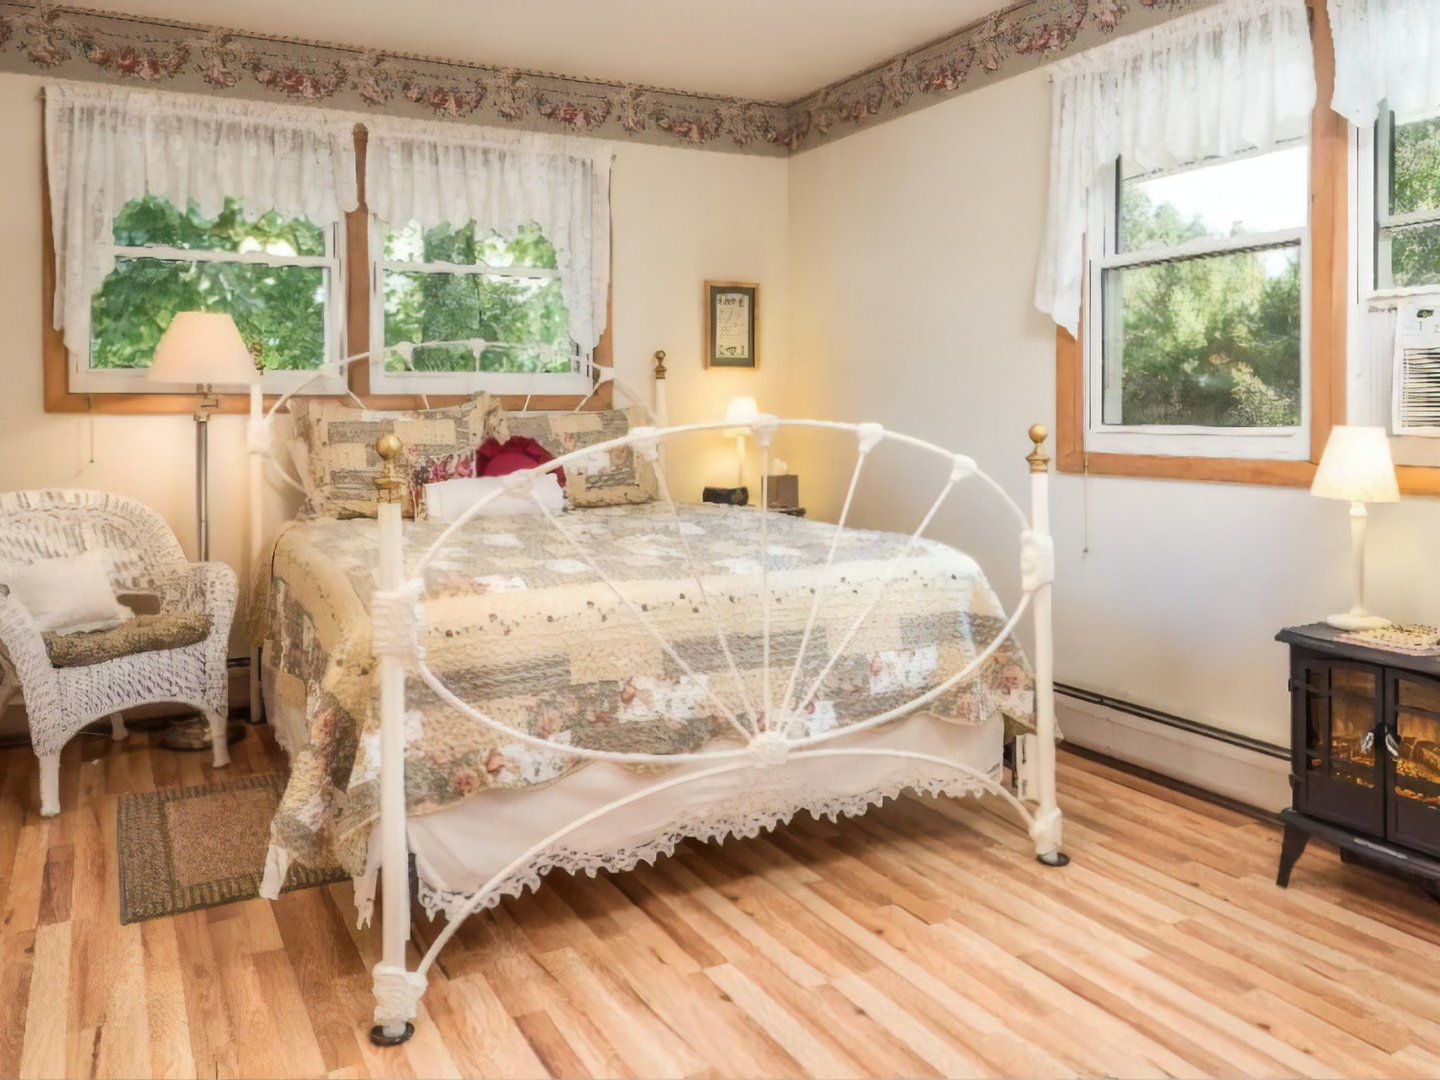 A room filled with furniture and a wood floor at Bowman's Oak Hill Bed and Breakfast.